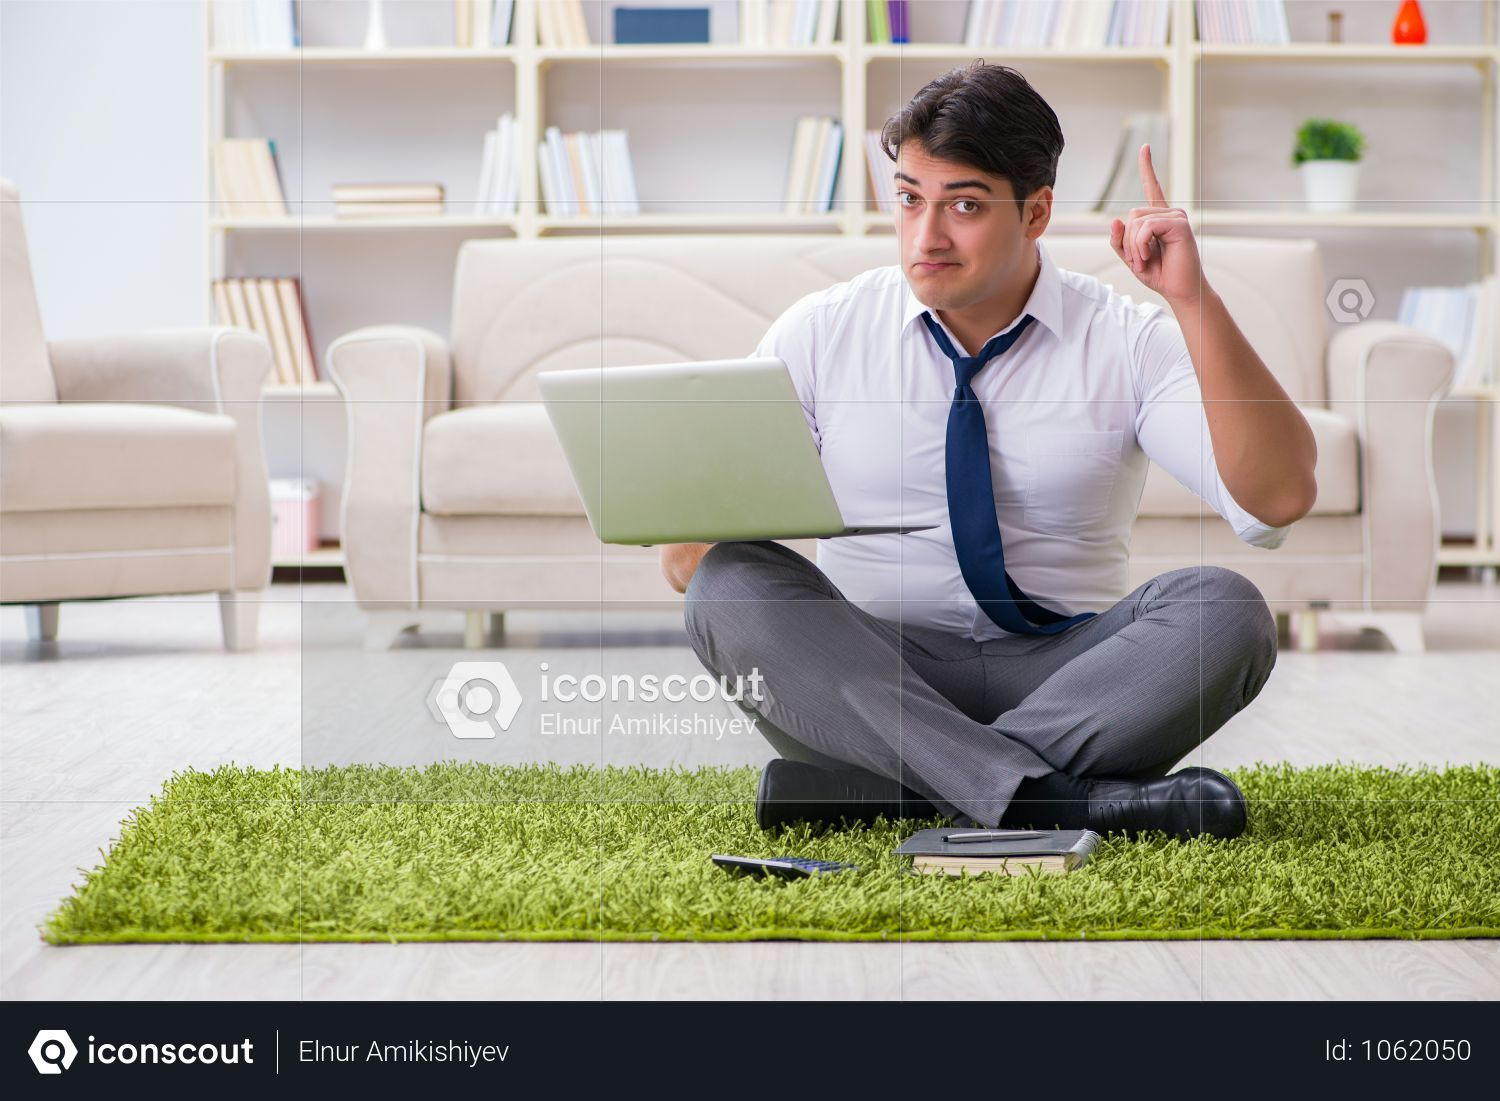 Premium Businessman Sitting On The Floor In Office Photo Download In Png Jpg Format Flooring Business Man Business Photos